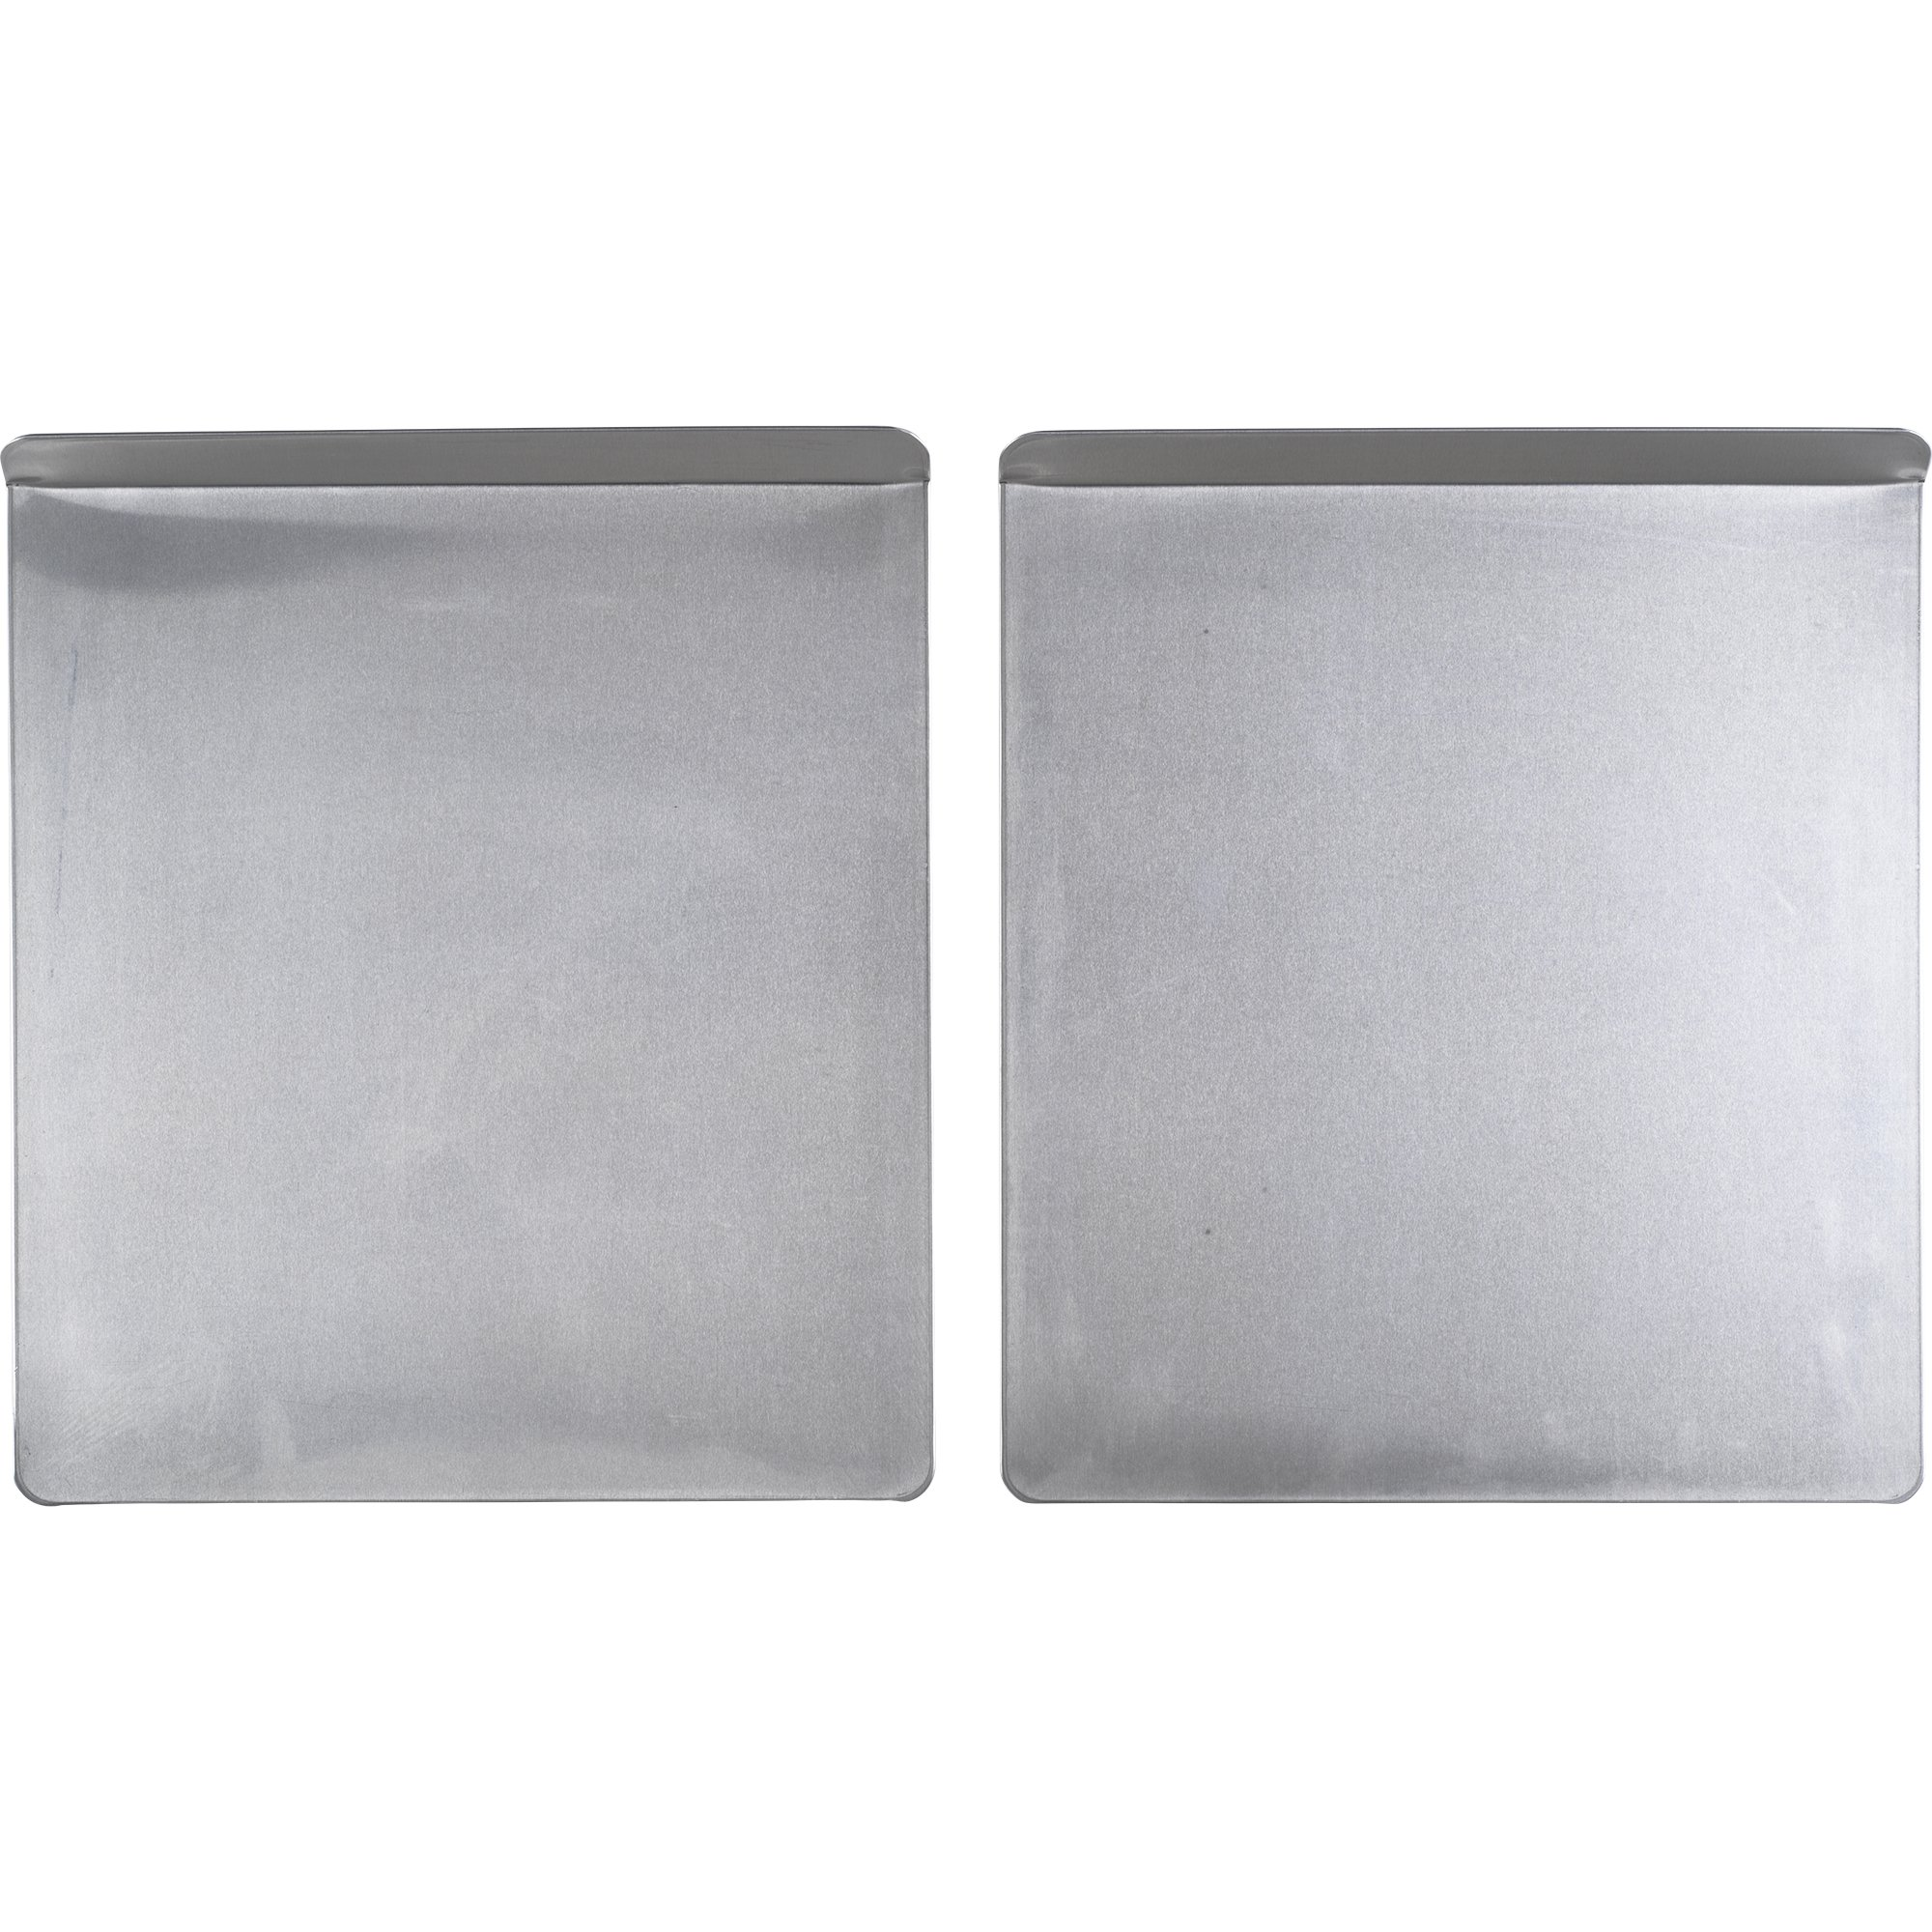 AirBake Natural 2 Pack Cookie Sheet Set, 16 x 14 in by T-fal (Image #5)